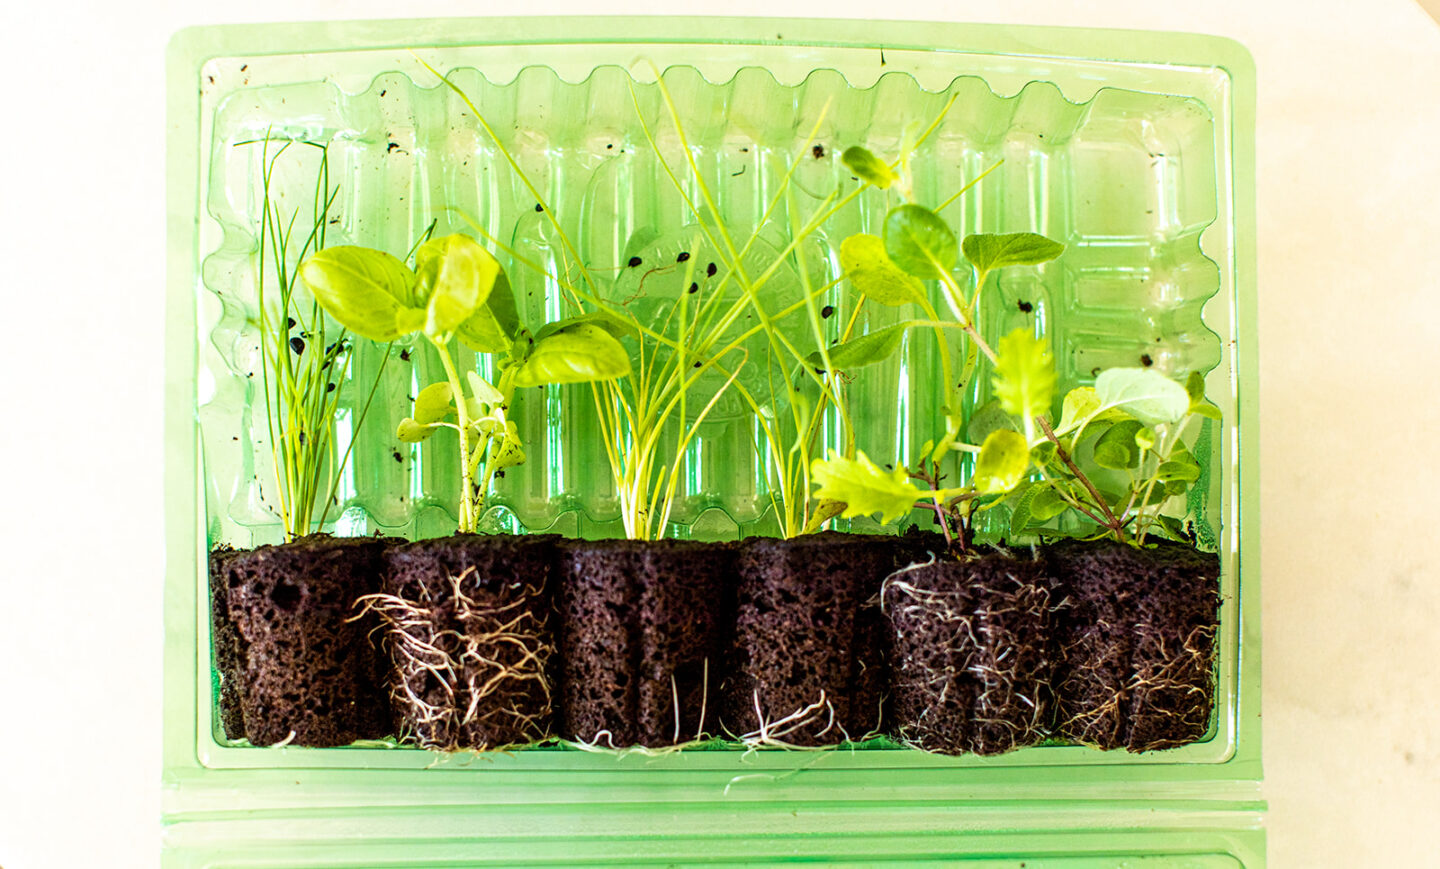 easy hydroponic garden, featured by top Atlanta lifestyle blogger, Moderately High Maintenance | Hydroponic Garden by popular Atlanta lifestyle blog, Moderately High Maintenance: image of seedlings in a green plastic container.